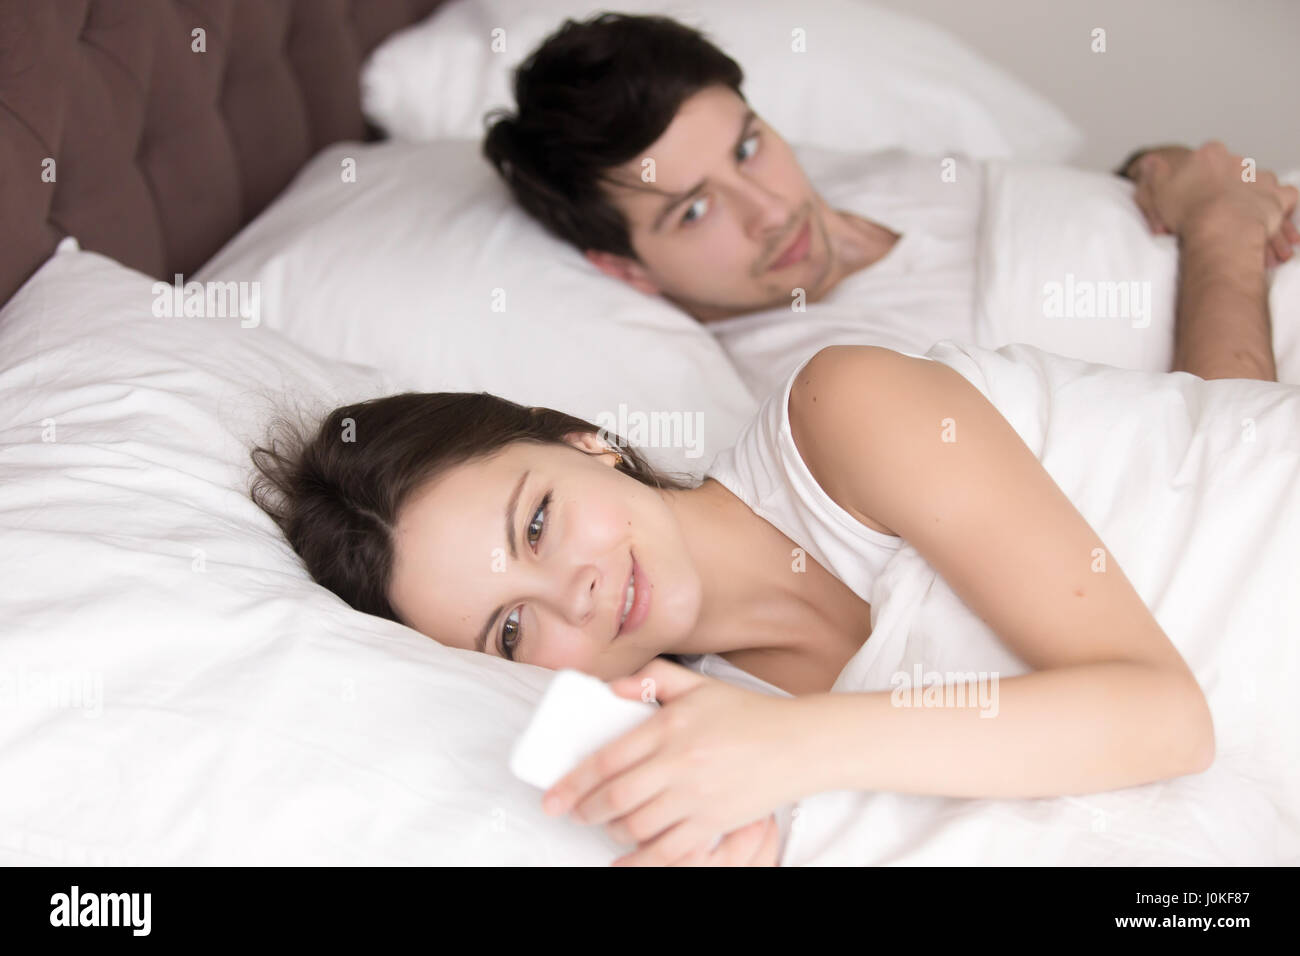 Suspicious guy looking at cheating girlfriend hiding something o - Stock Image